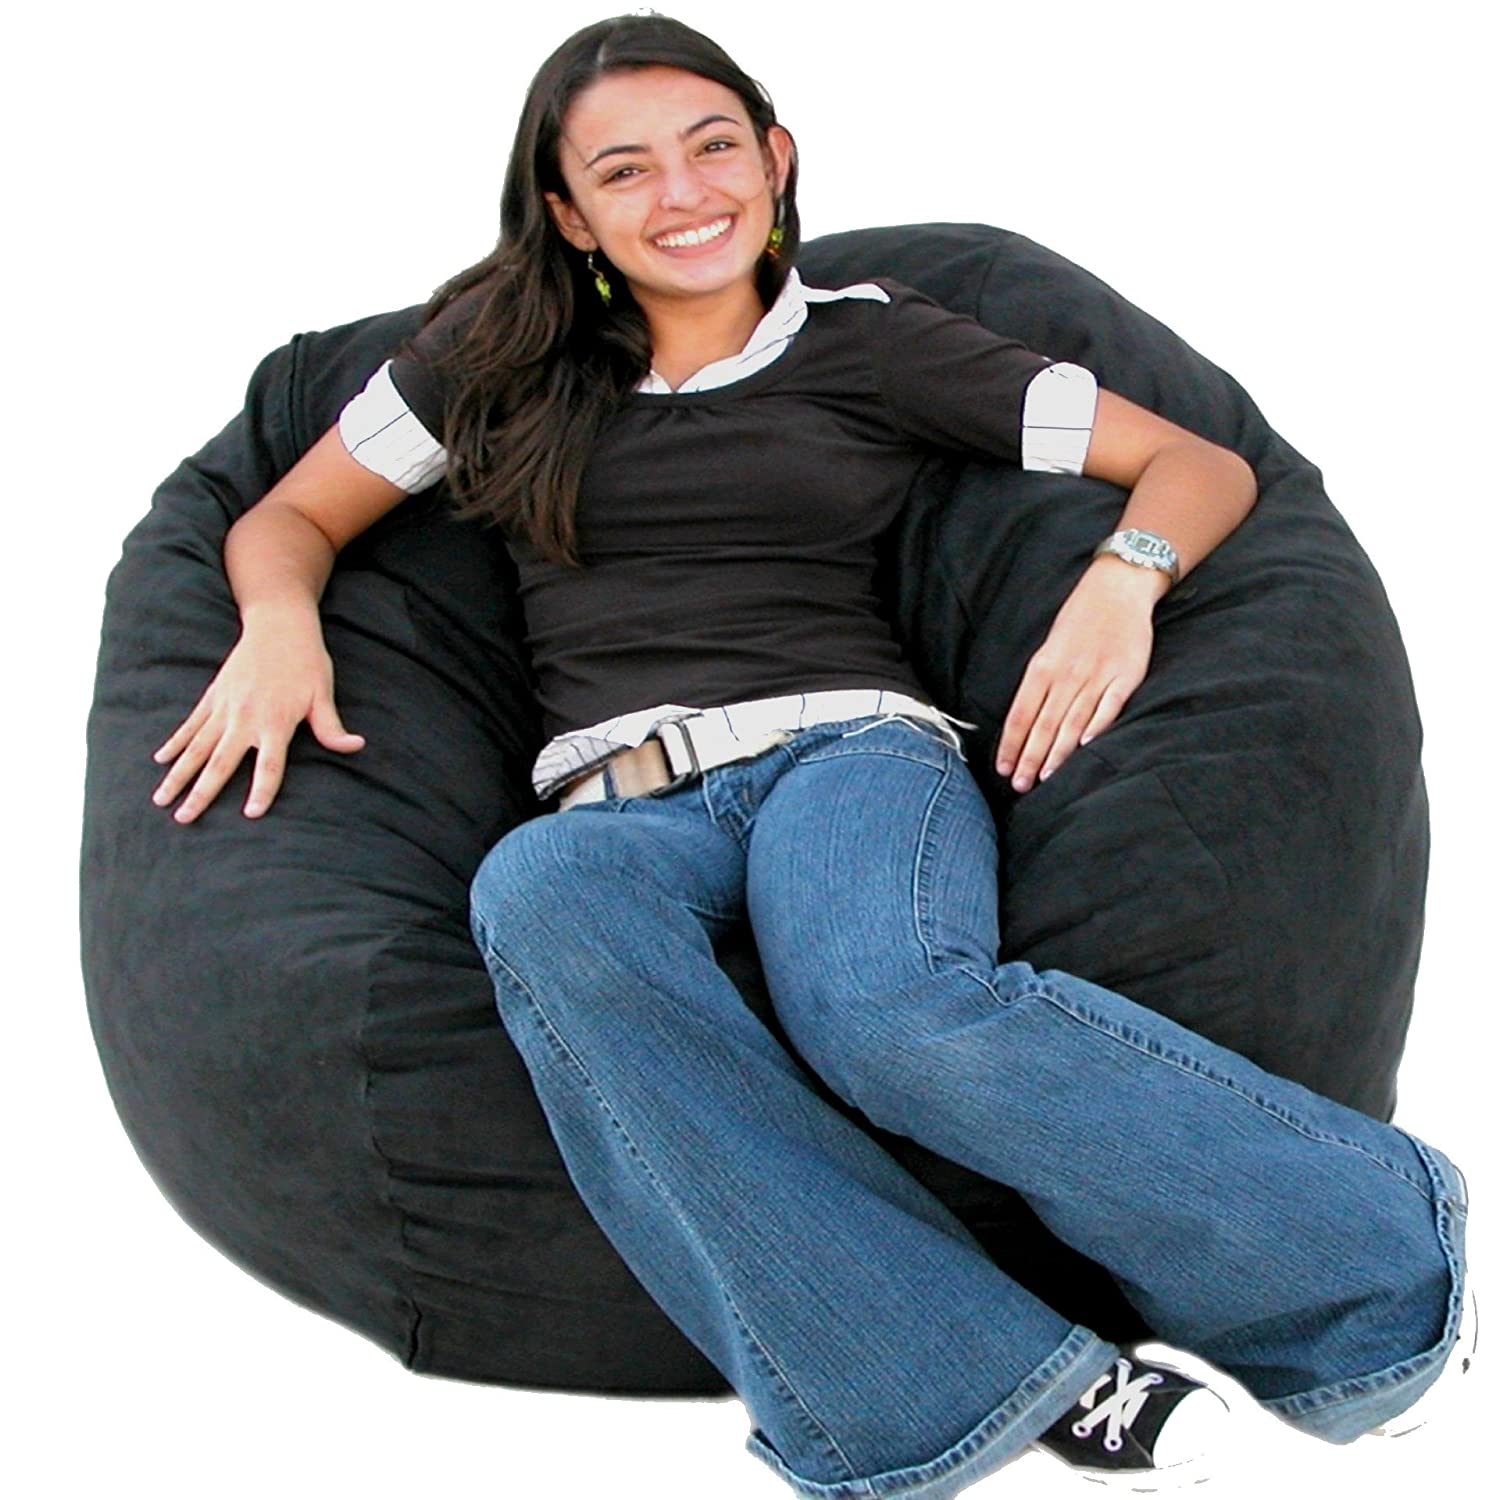 Amazoncom Cozy Sack Feet Bean Bag Chair Medium Black - Cozy chill bag